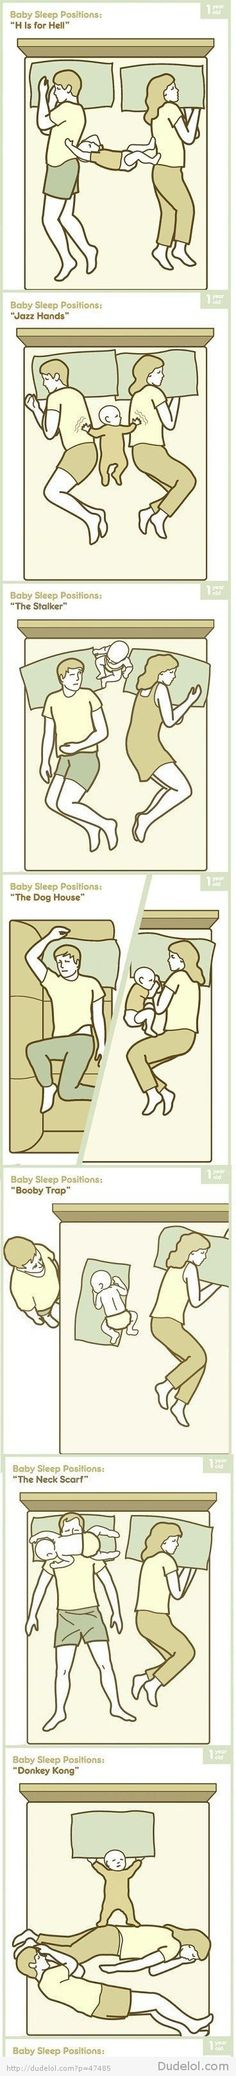 Baby Sleeping Positions  so funny!